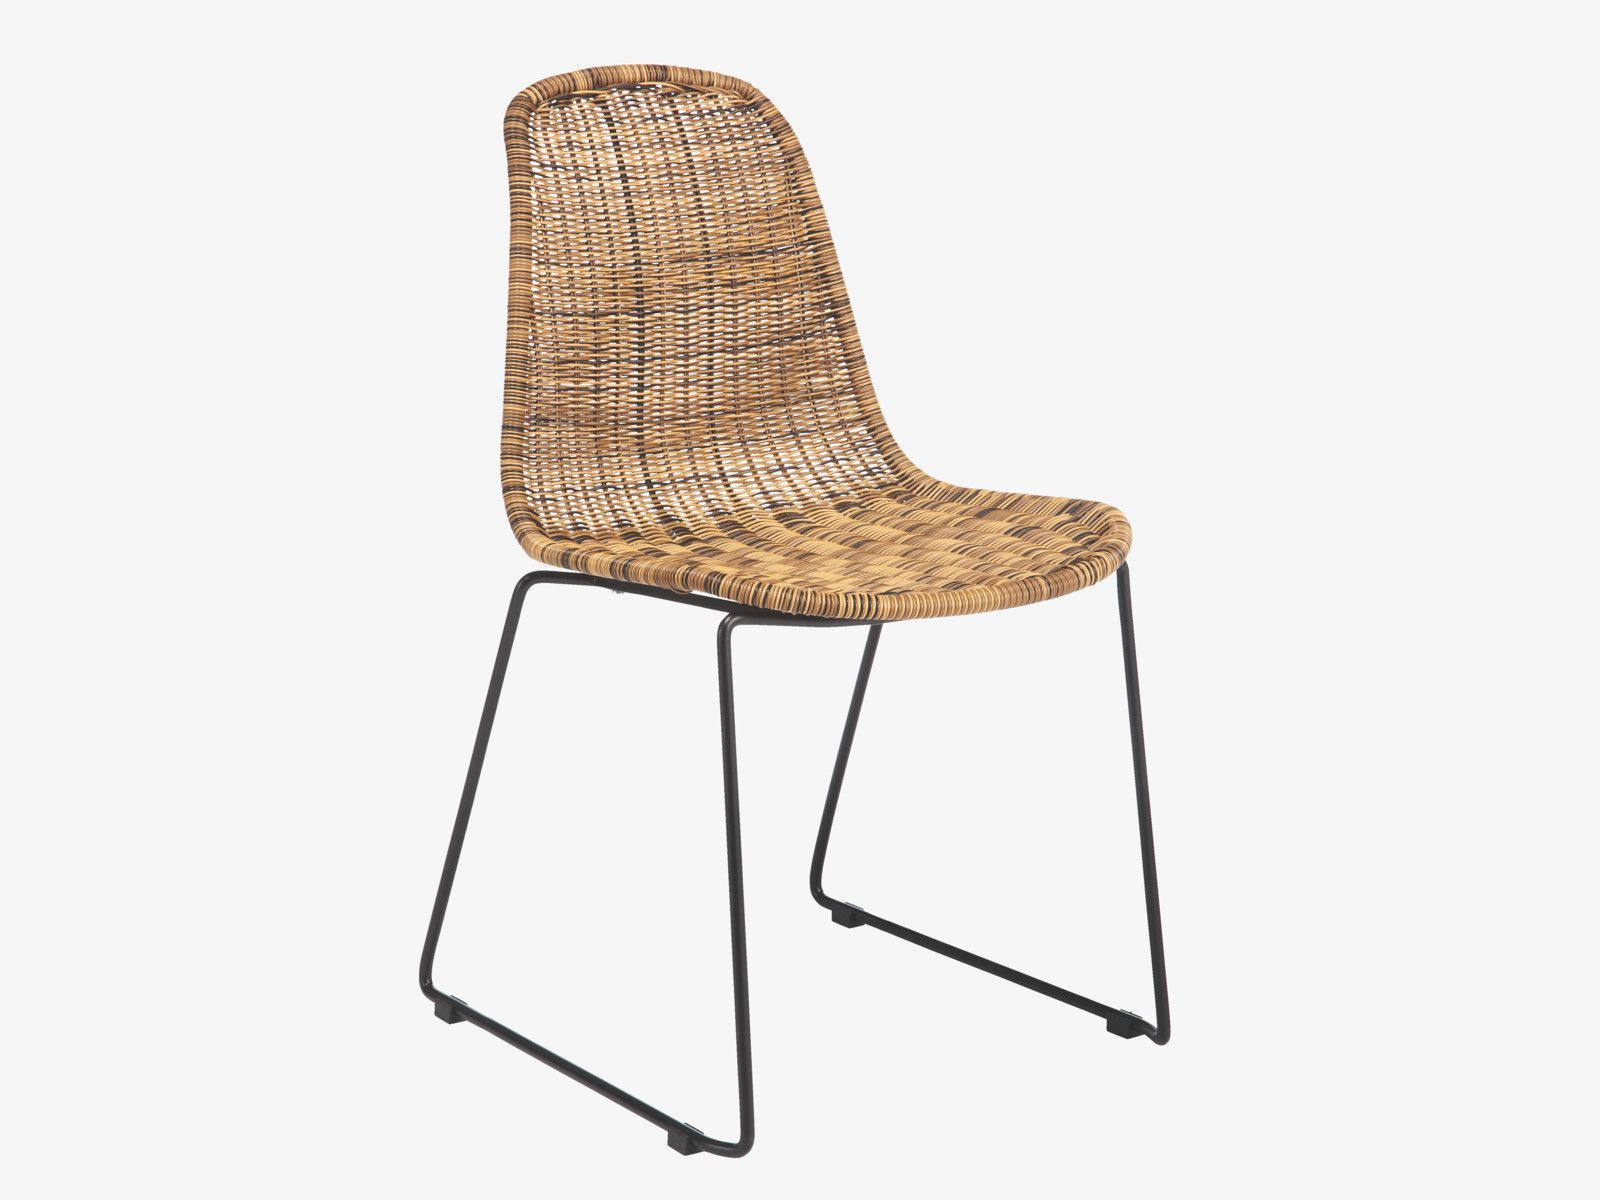 wicker kitchen chairs MICKEY NATURAL Rattan Natural rattan dining chair HabitatUK